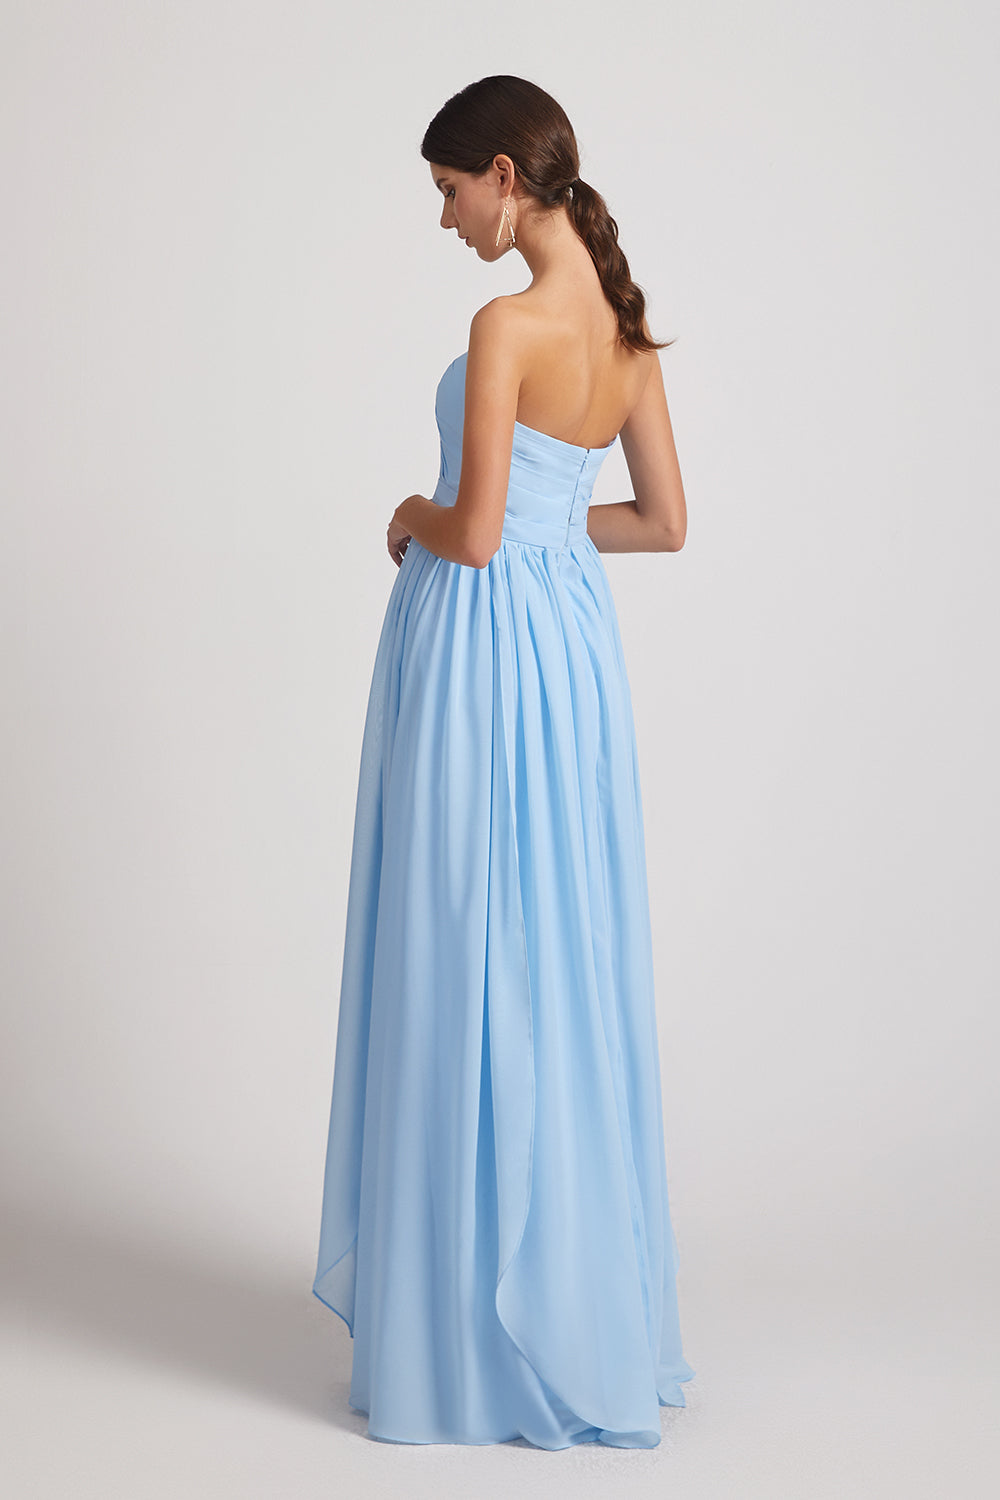 open back sleeveless chiffon bridesmaid gowns